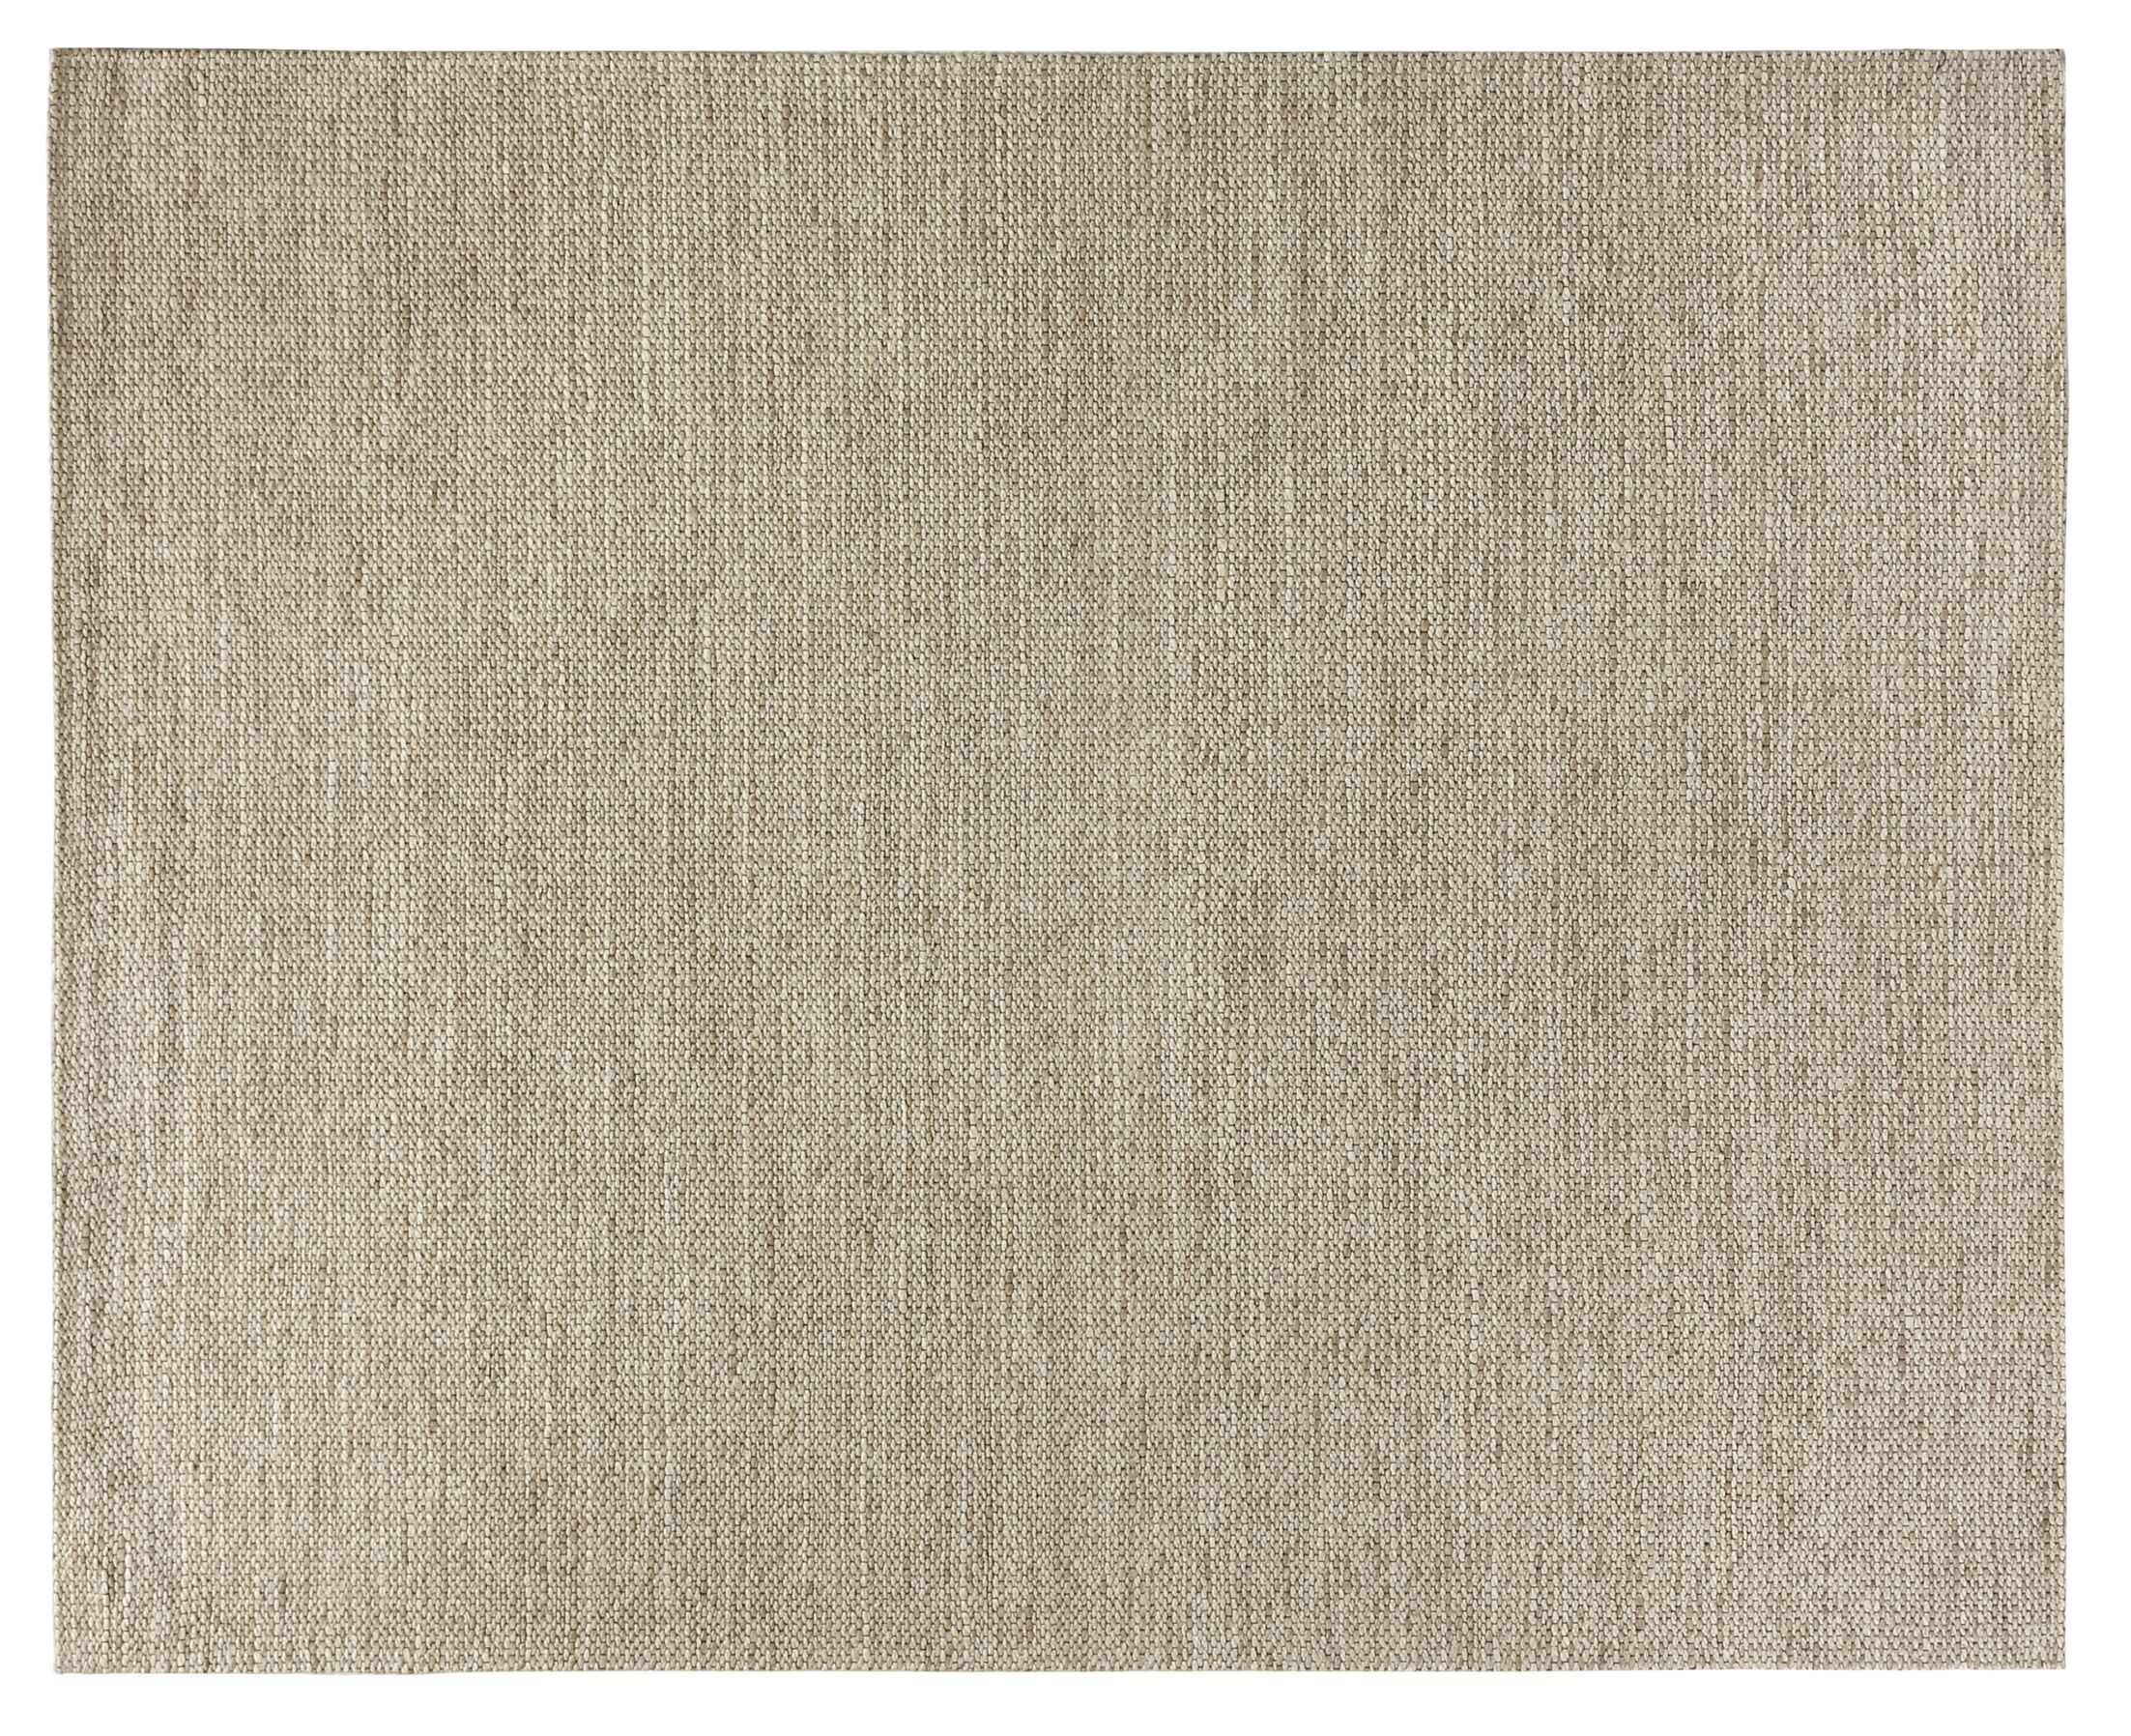 Crestwood Hand-Woven Beige Area Rug Rug Size: Rectangle 12' x 15'